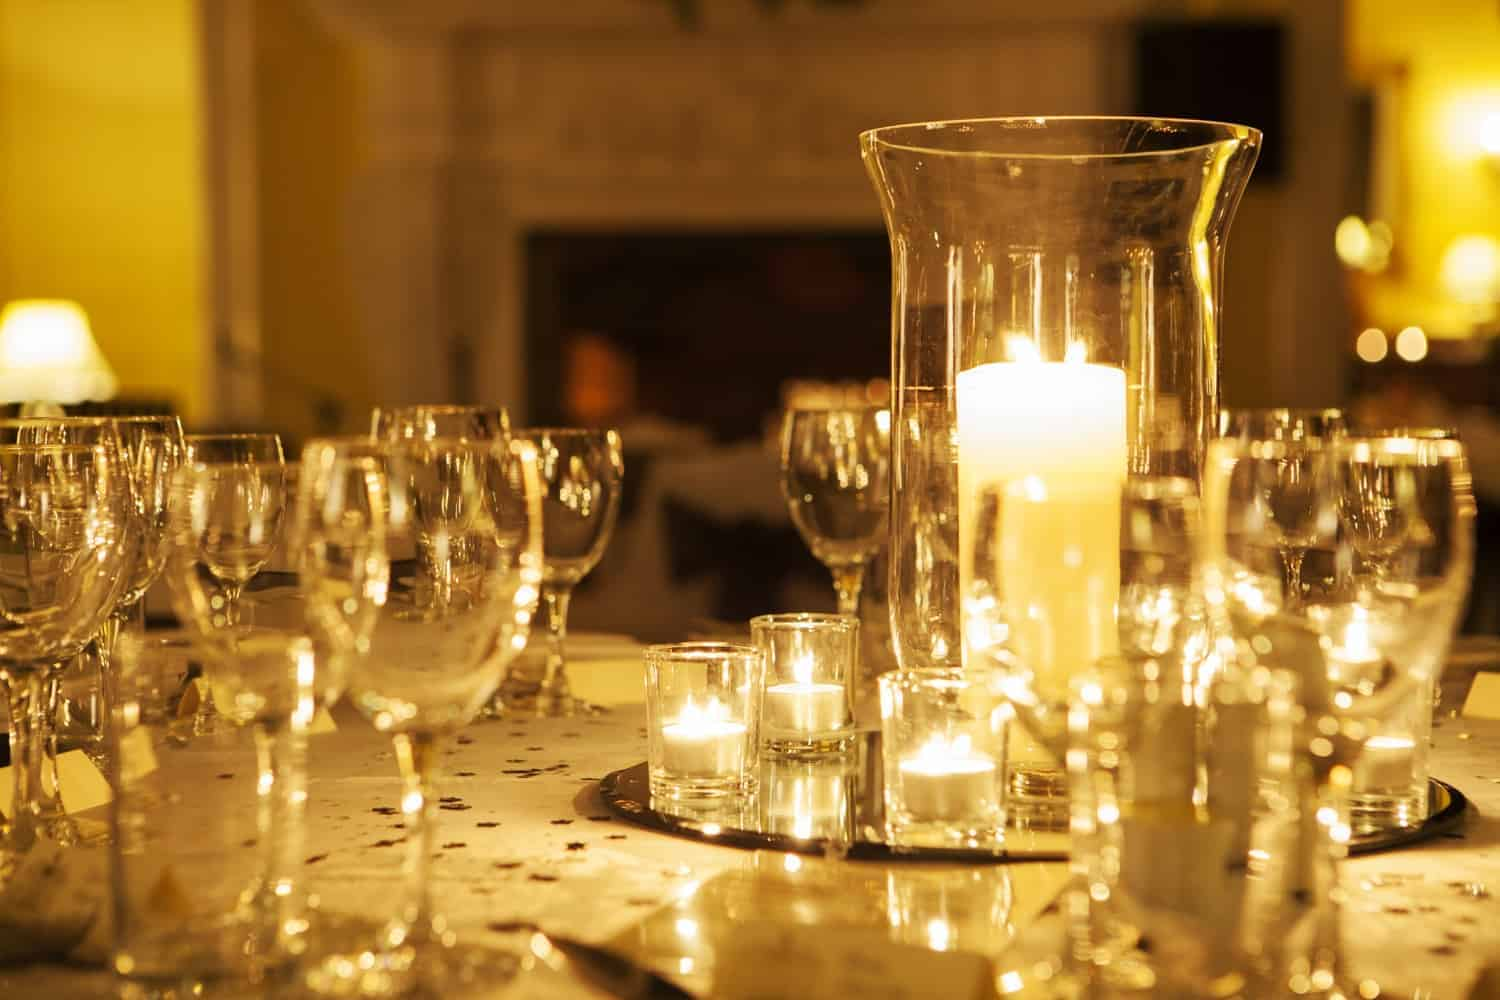 Clearwell Castle - Candles at Night